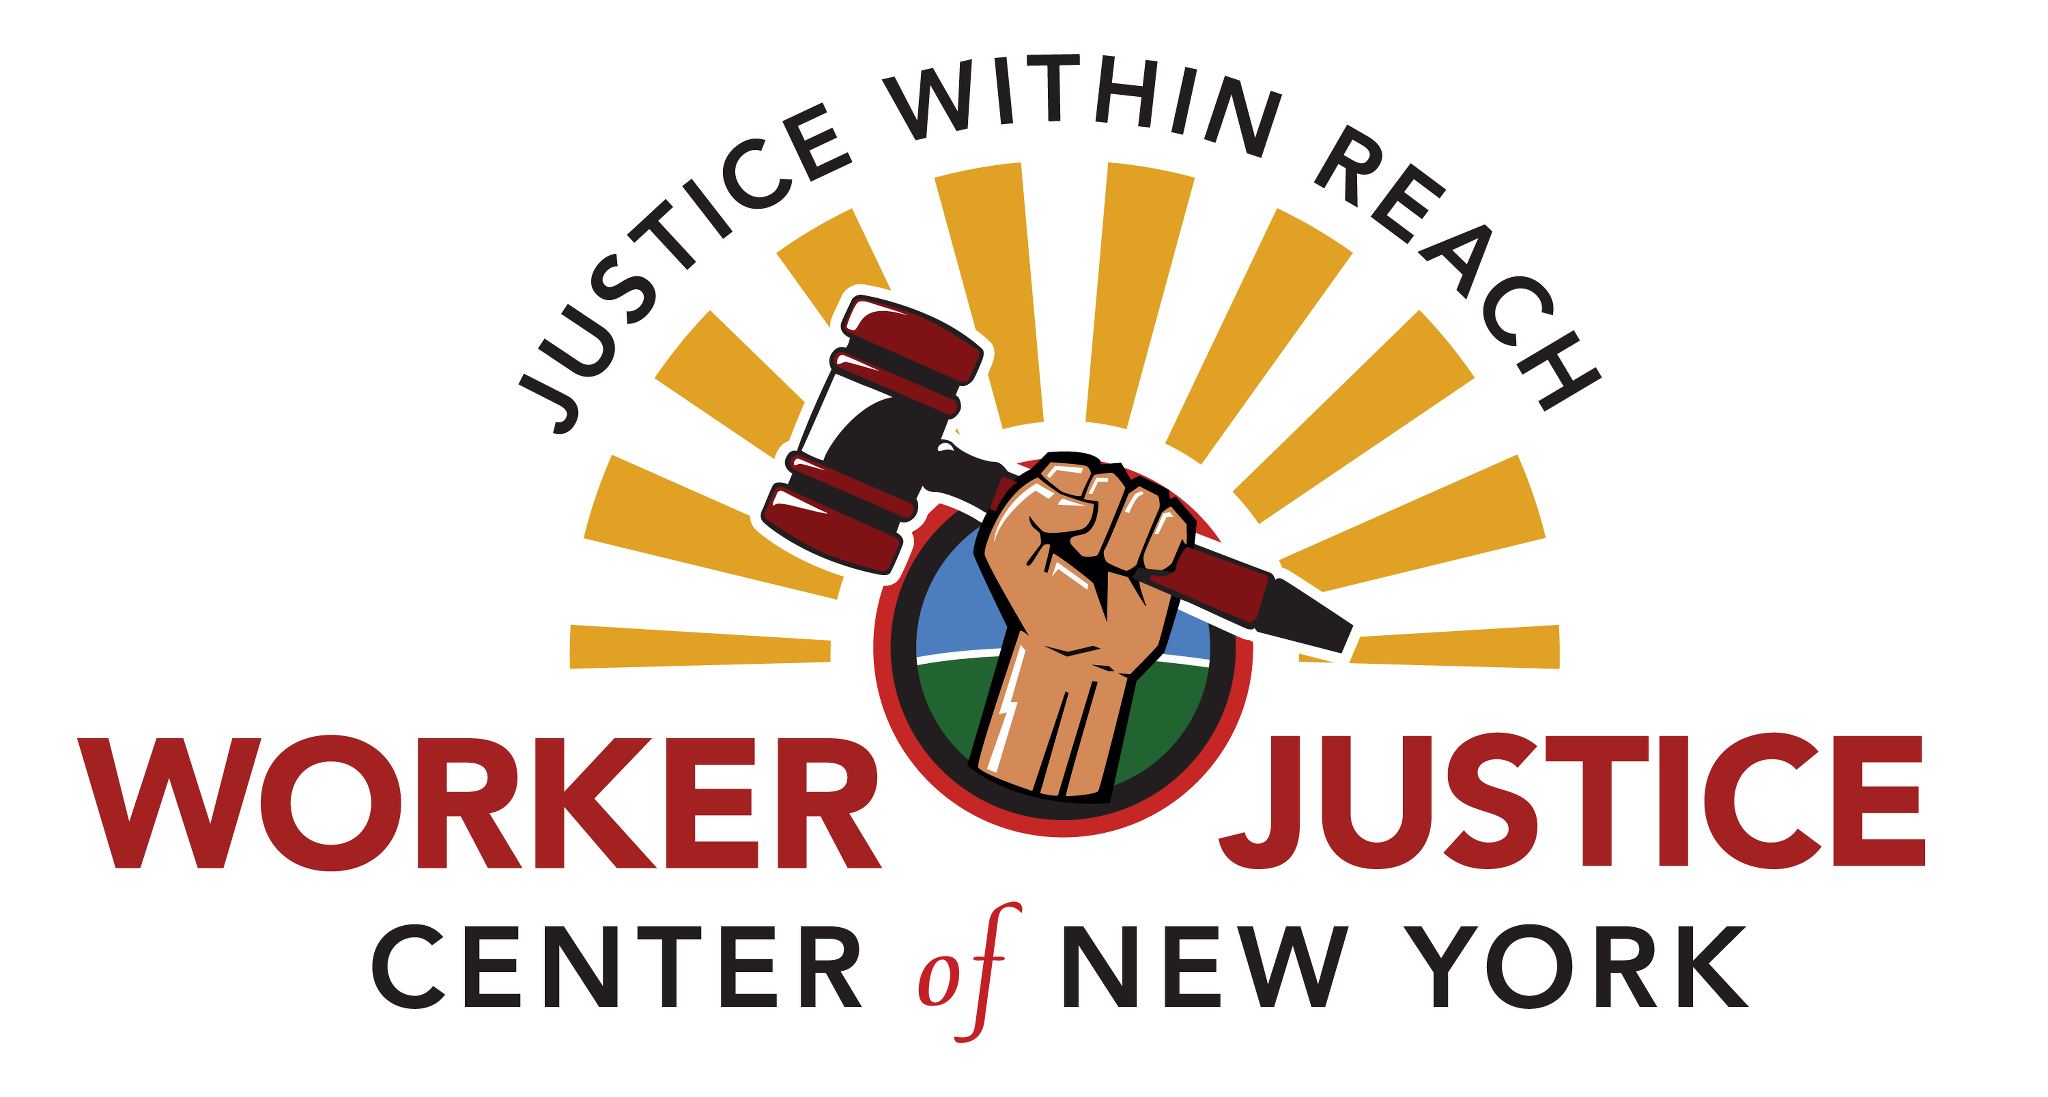 New York Chronicles: Worker Justice Center of New York